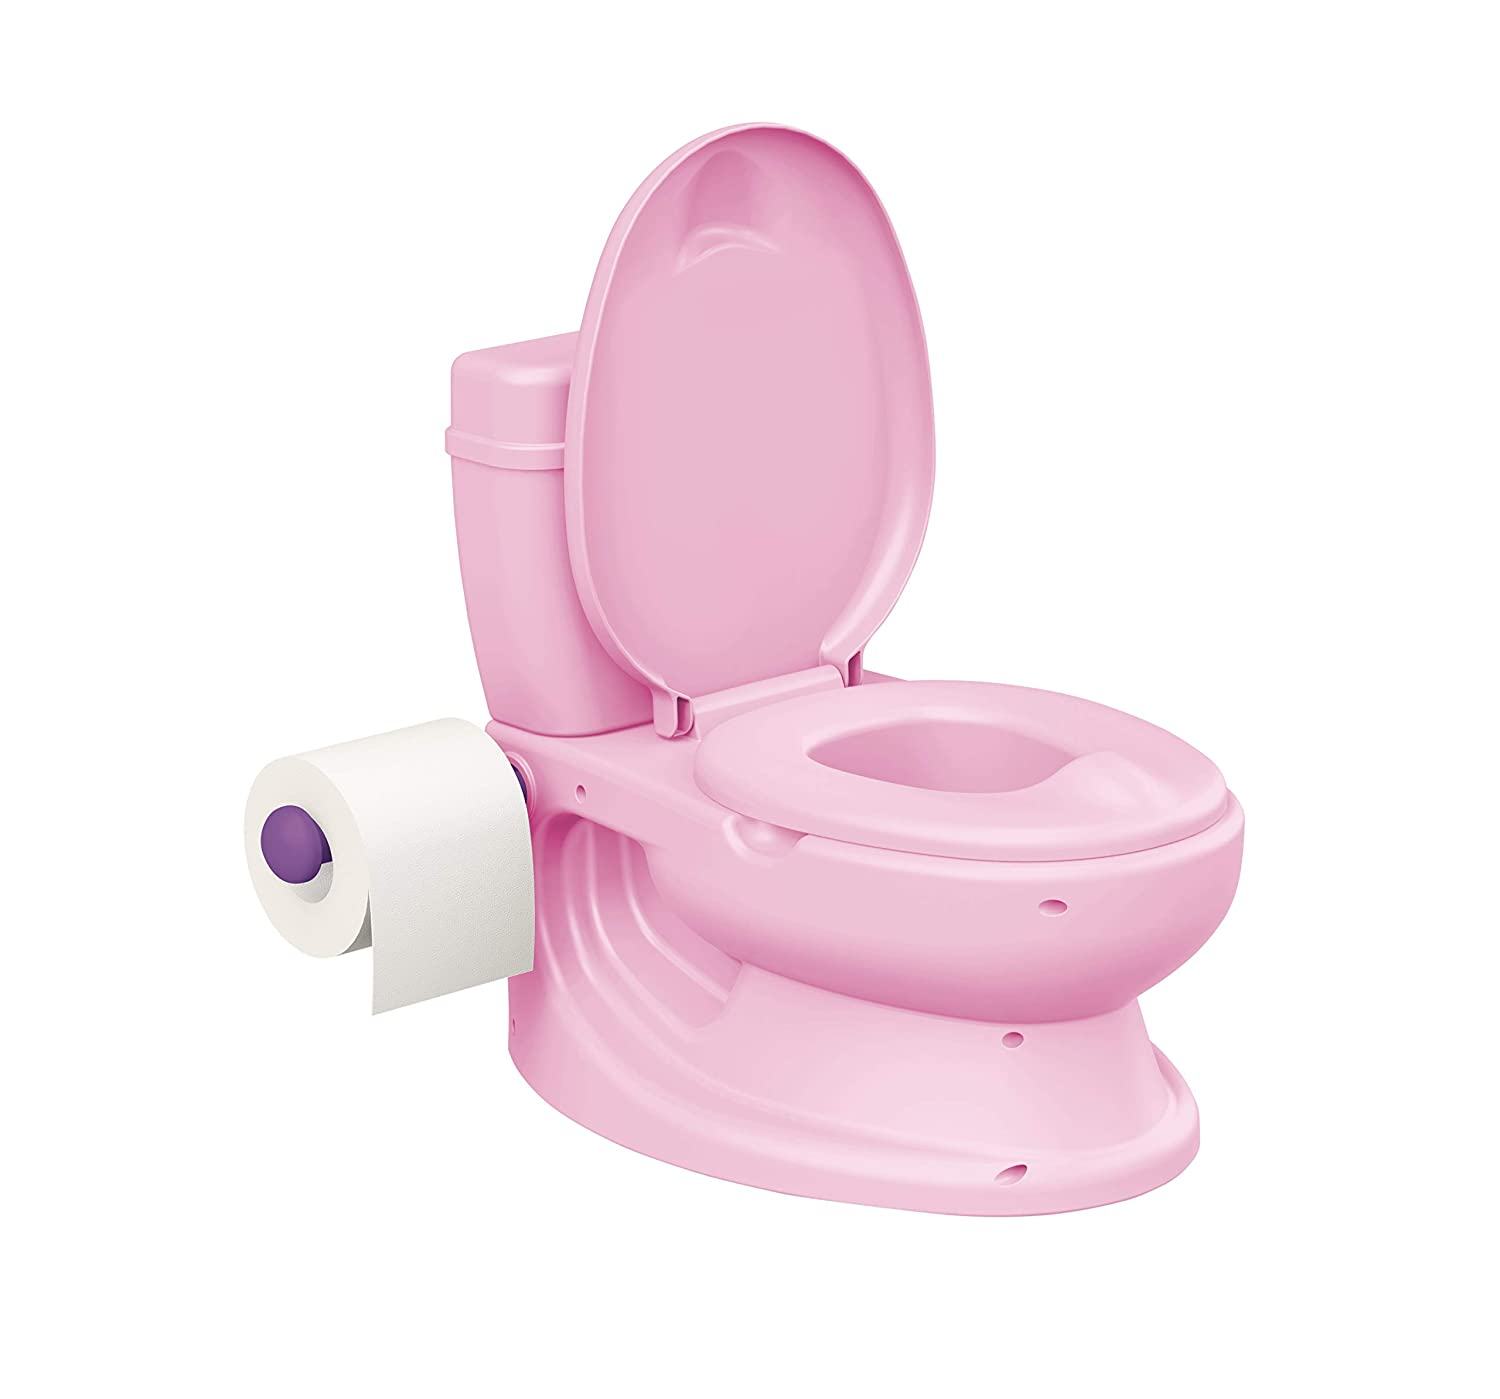 Toylet Potty Training Toilet with Comfy Potty Training Seat Cover, Tank Storage & Paper Roll Holder is A Training Potty for Girls & Boys Or Potty Chair (Pink)